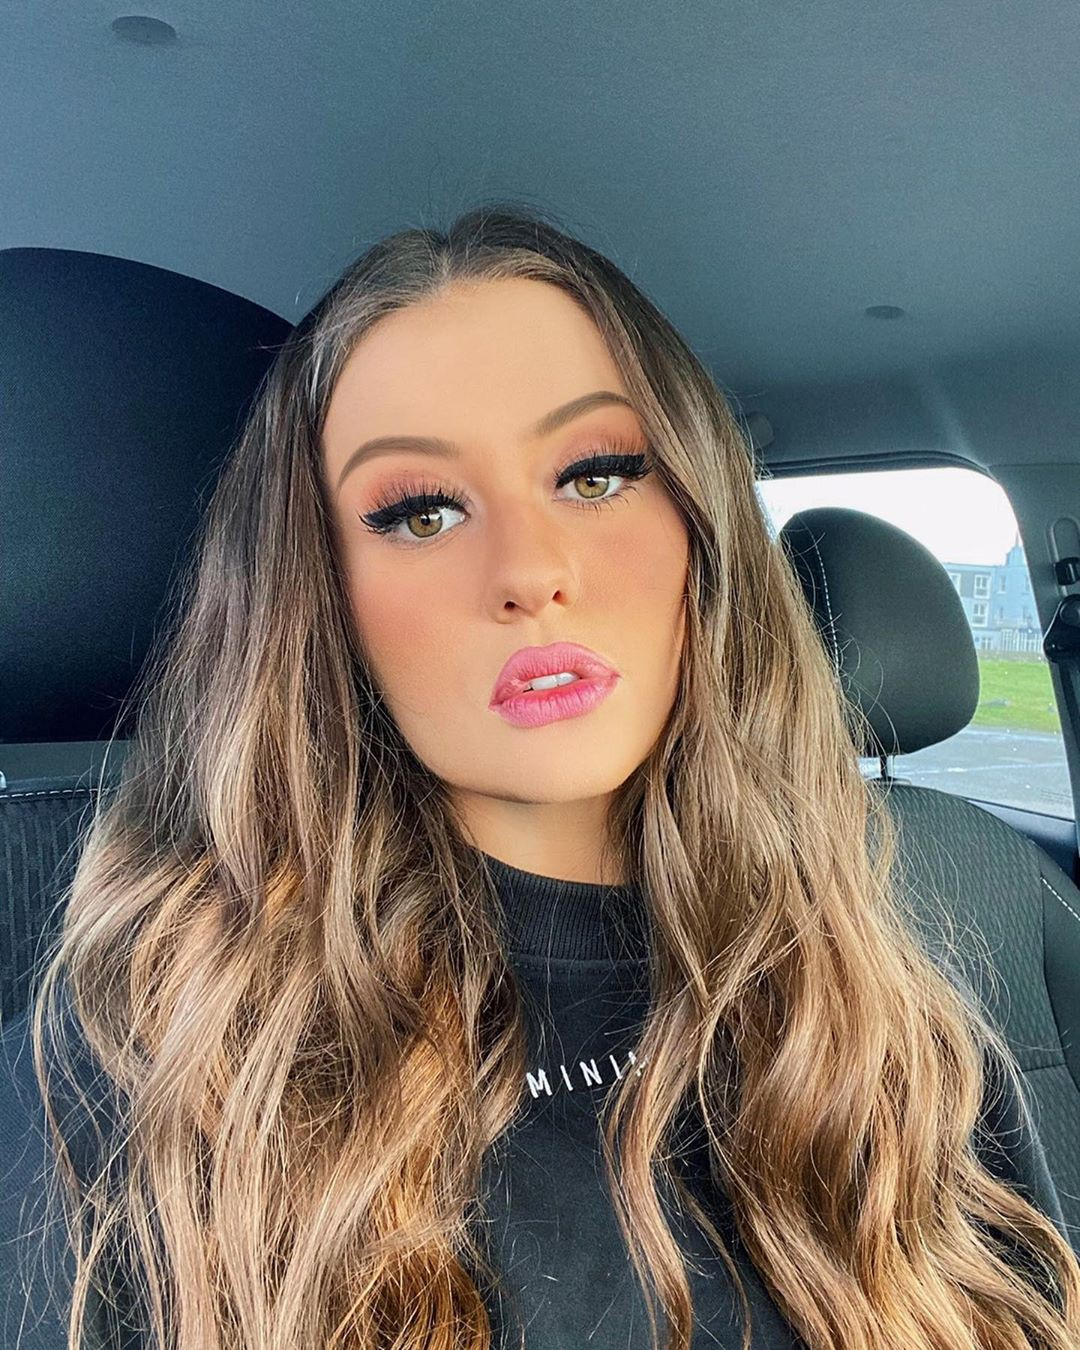 Holly Horne blond hairs pic, Face Makeup, Glossy Lips